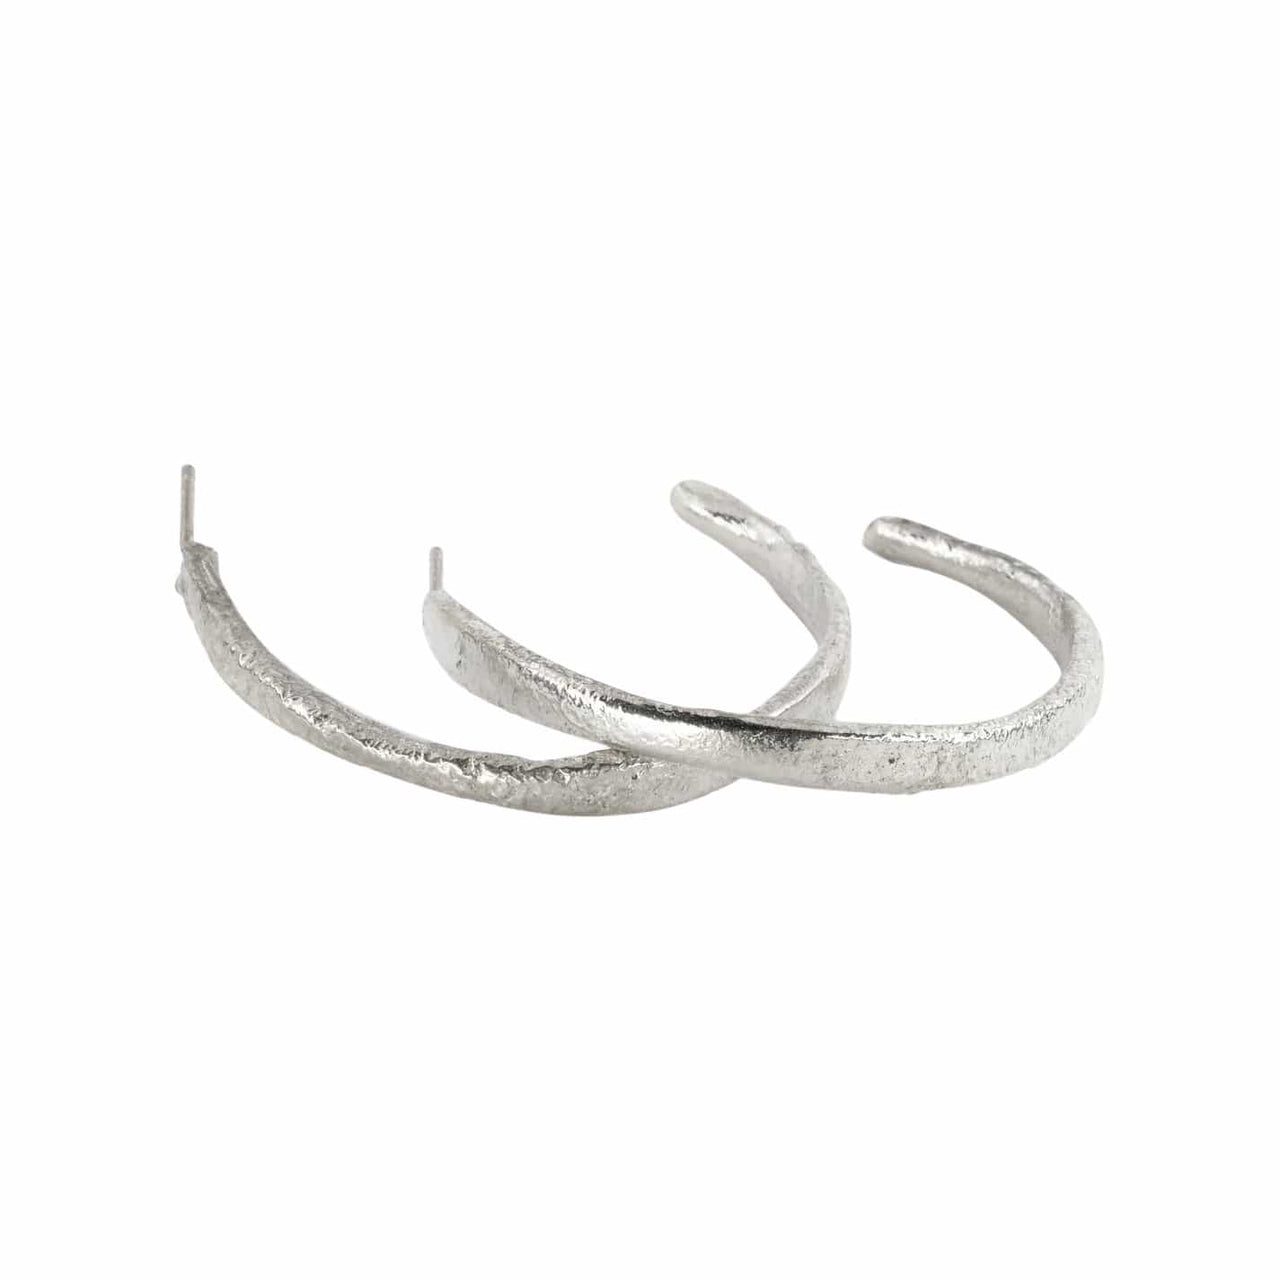 Gabriela Ortiz Earrings Fusion Integration Hoop Earrings